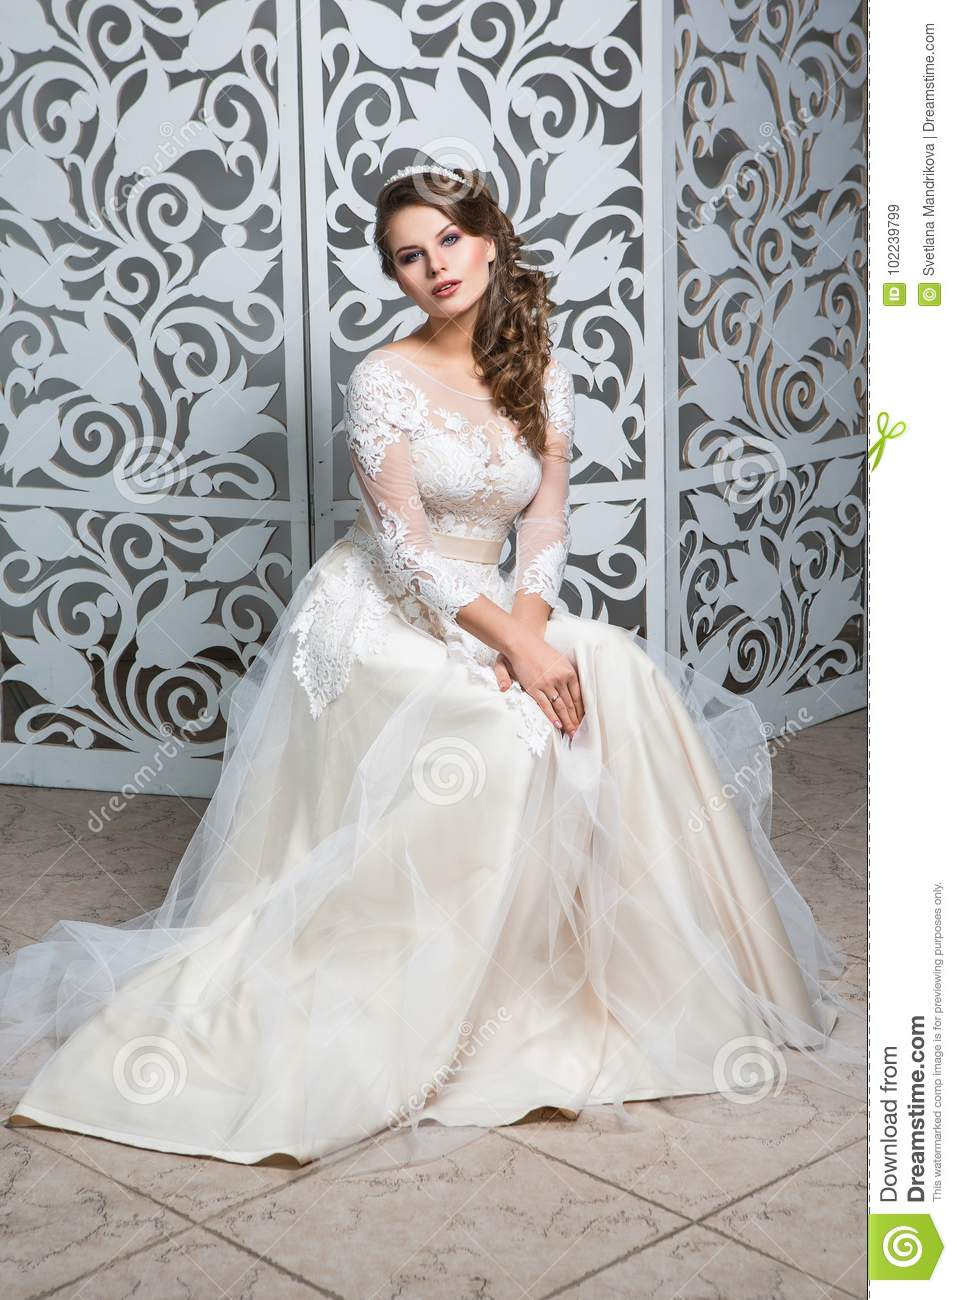 Beautiful Girl In Wedding Gown Stock Image - Image of gown, event ...